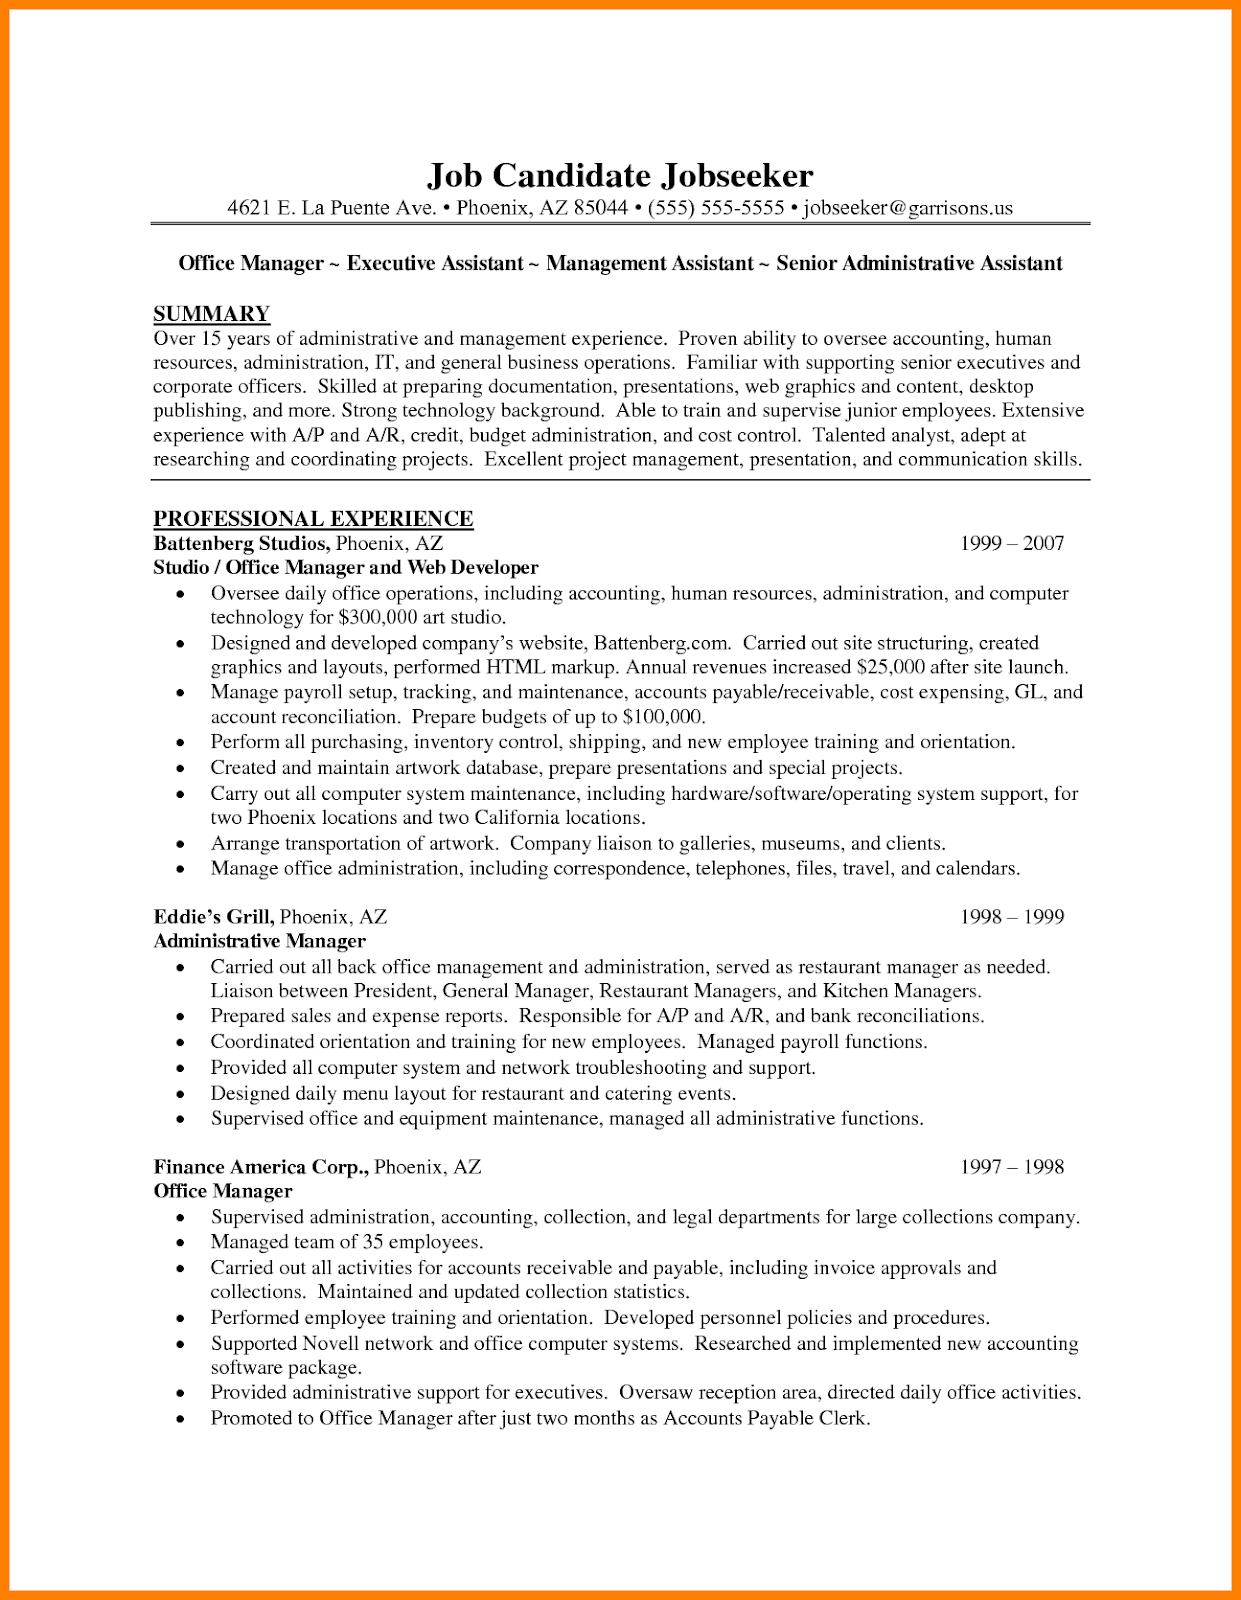 Administrative Assistant Resume Summary, administrative